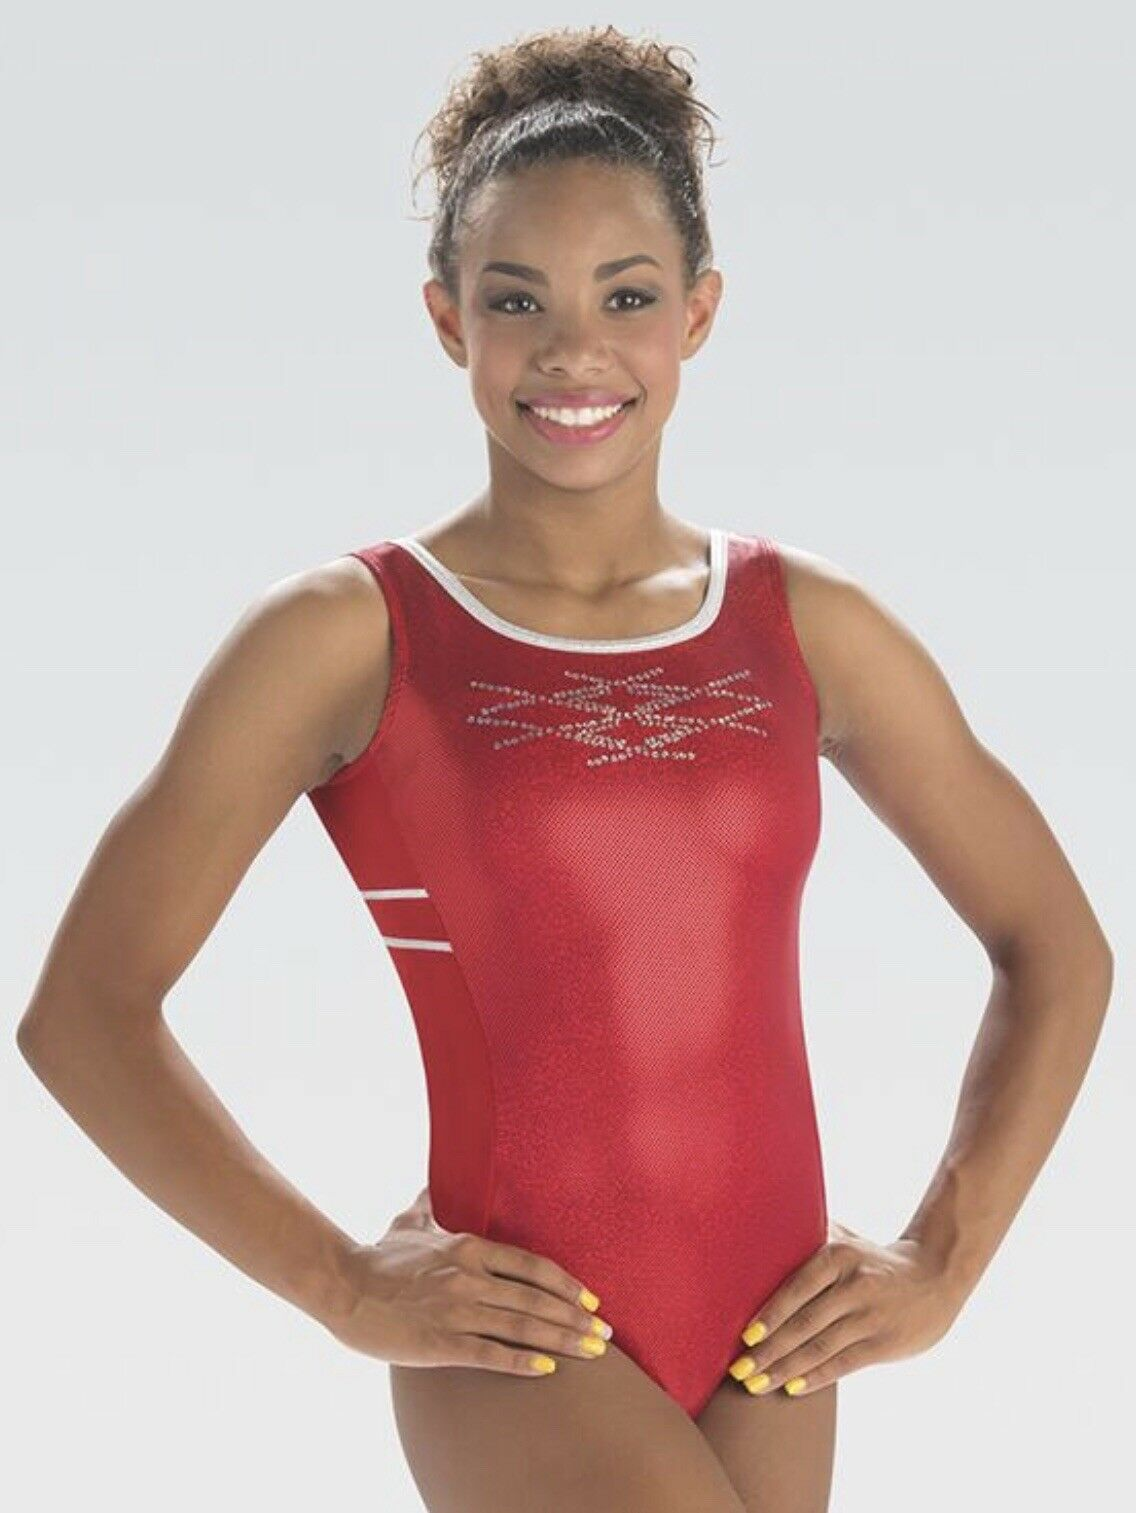 GK Elite RED SPARKLE TANK Leotard ADULT SMALL AS 3802 MSRP  NEW